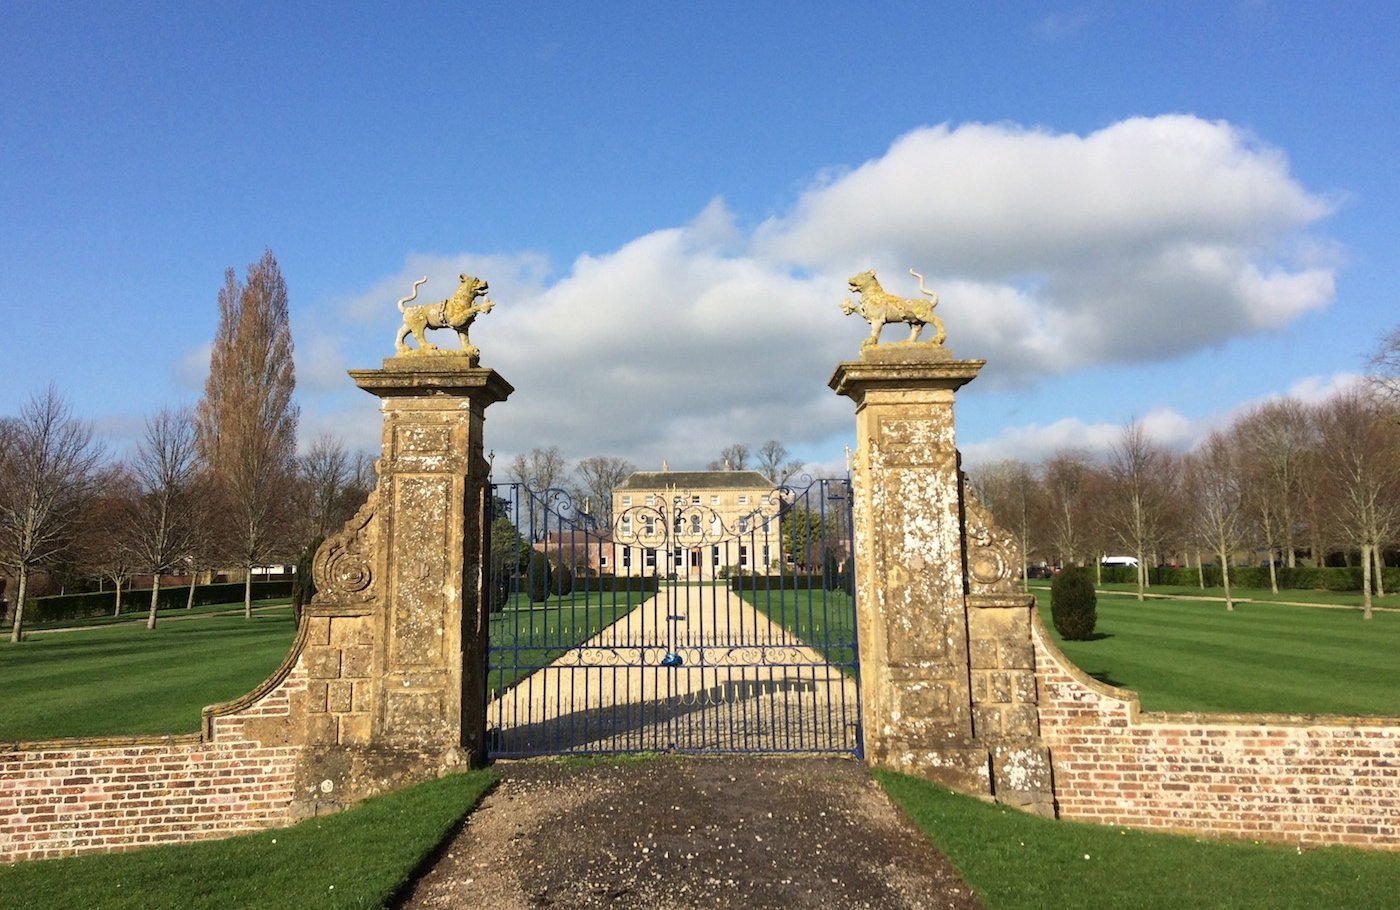 Private school gates with stone lions on top